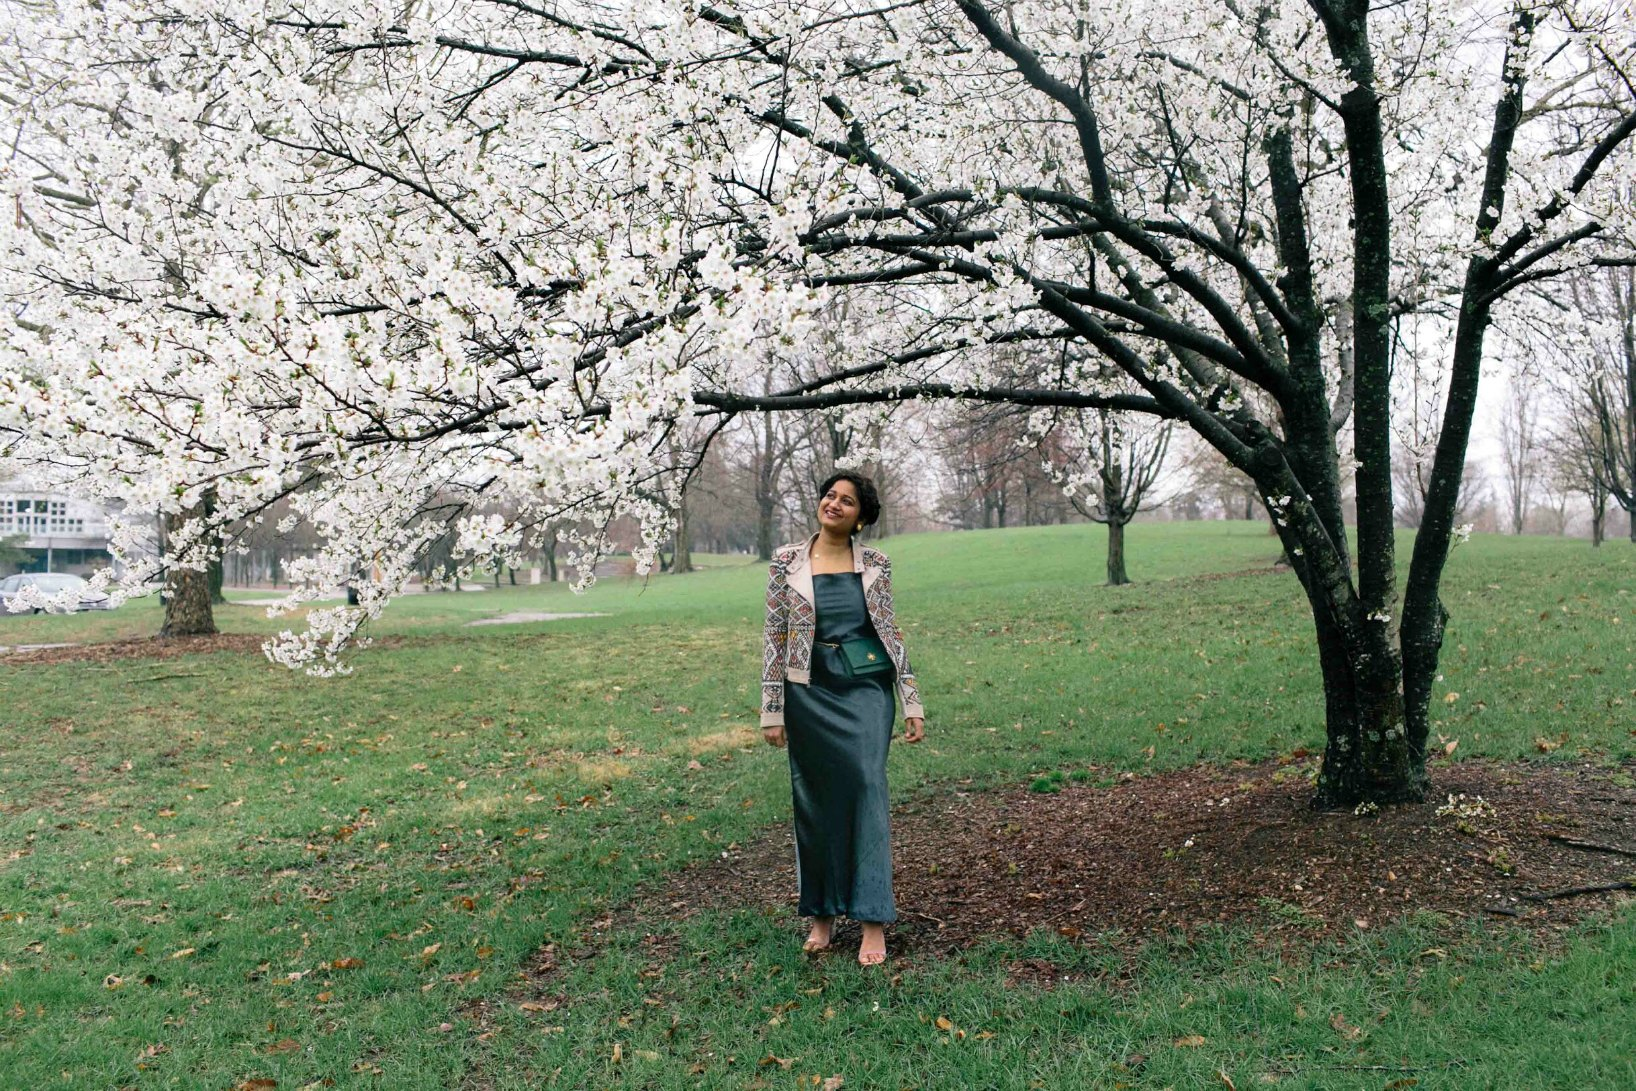 Modest fashion and lifestyle blog dreaming loud wearing banana republic Textured Satin Bias-Cut Maxi Slip Dress and standing under cherry blossom tree spring 2018 - How to Start a blog by popular Ohio blogger, Dreaming Loud